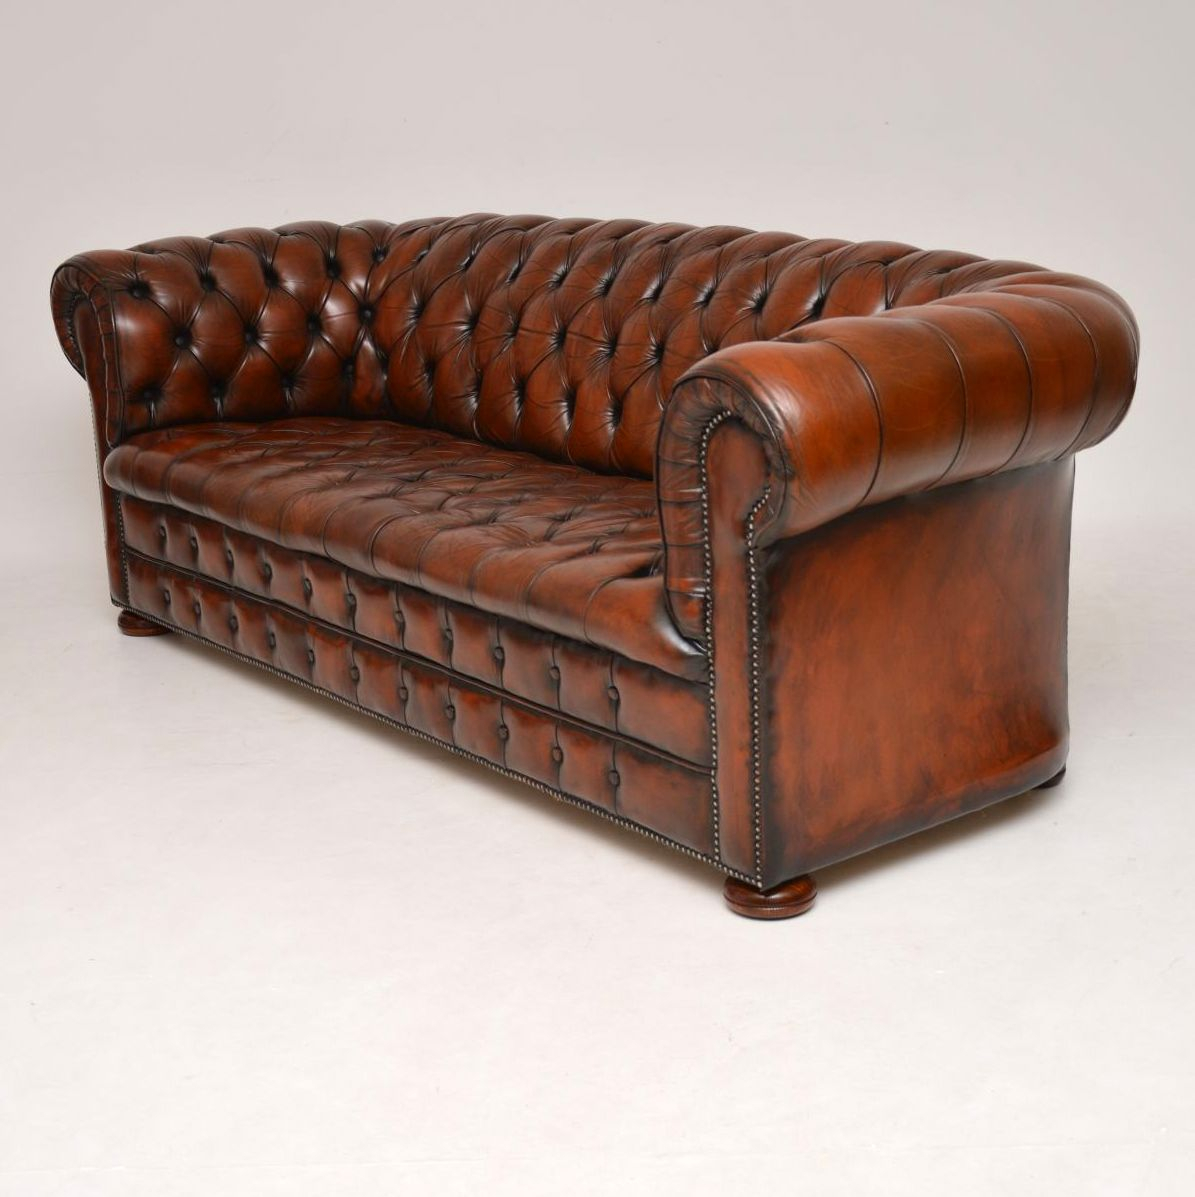 Antique Victorian Style Deep Buttoned Leather Chesterfield With Regard To Vintage Chesterfield Sofas (View 3 of 15)